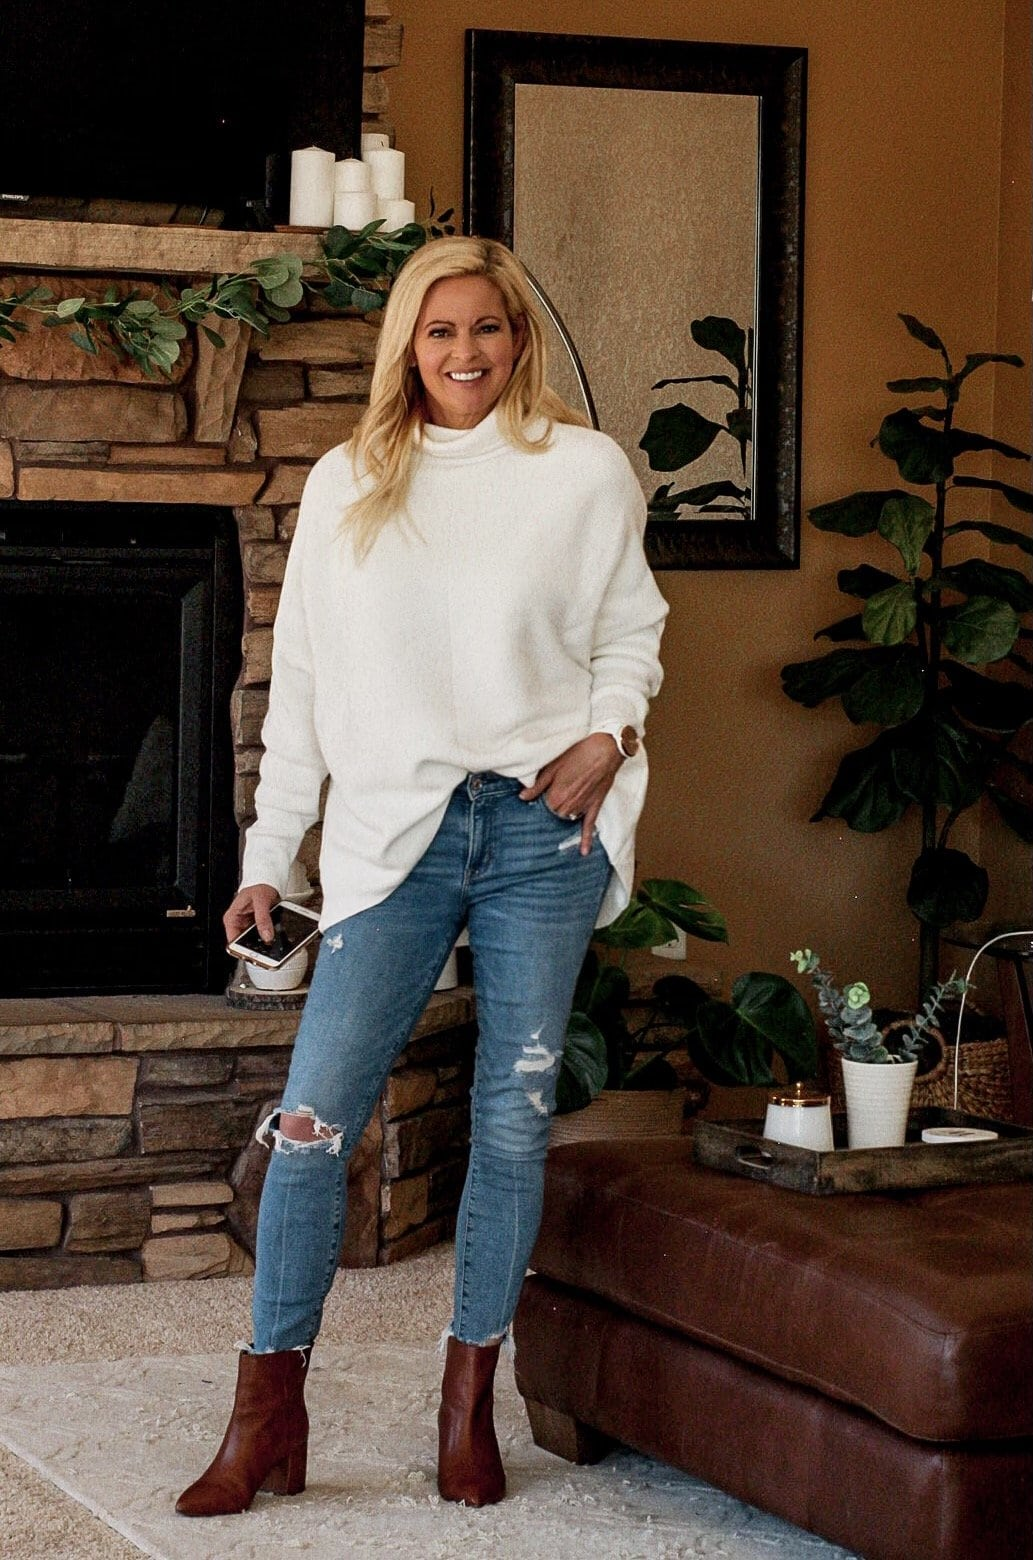 The Free People Sweater dupe and loads of outfit ideas to wear this unicorn of sweaters.